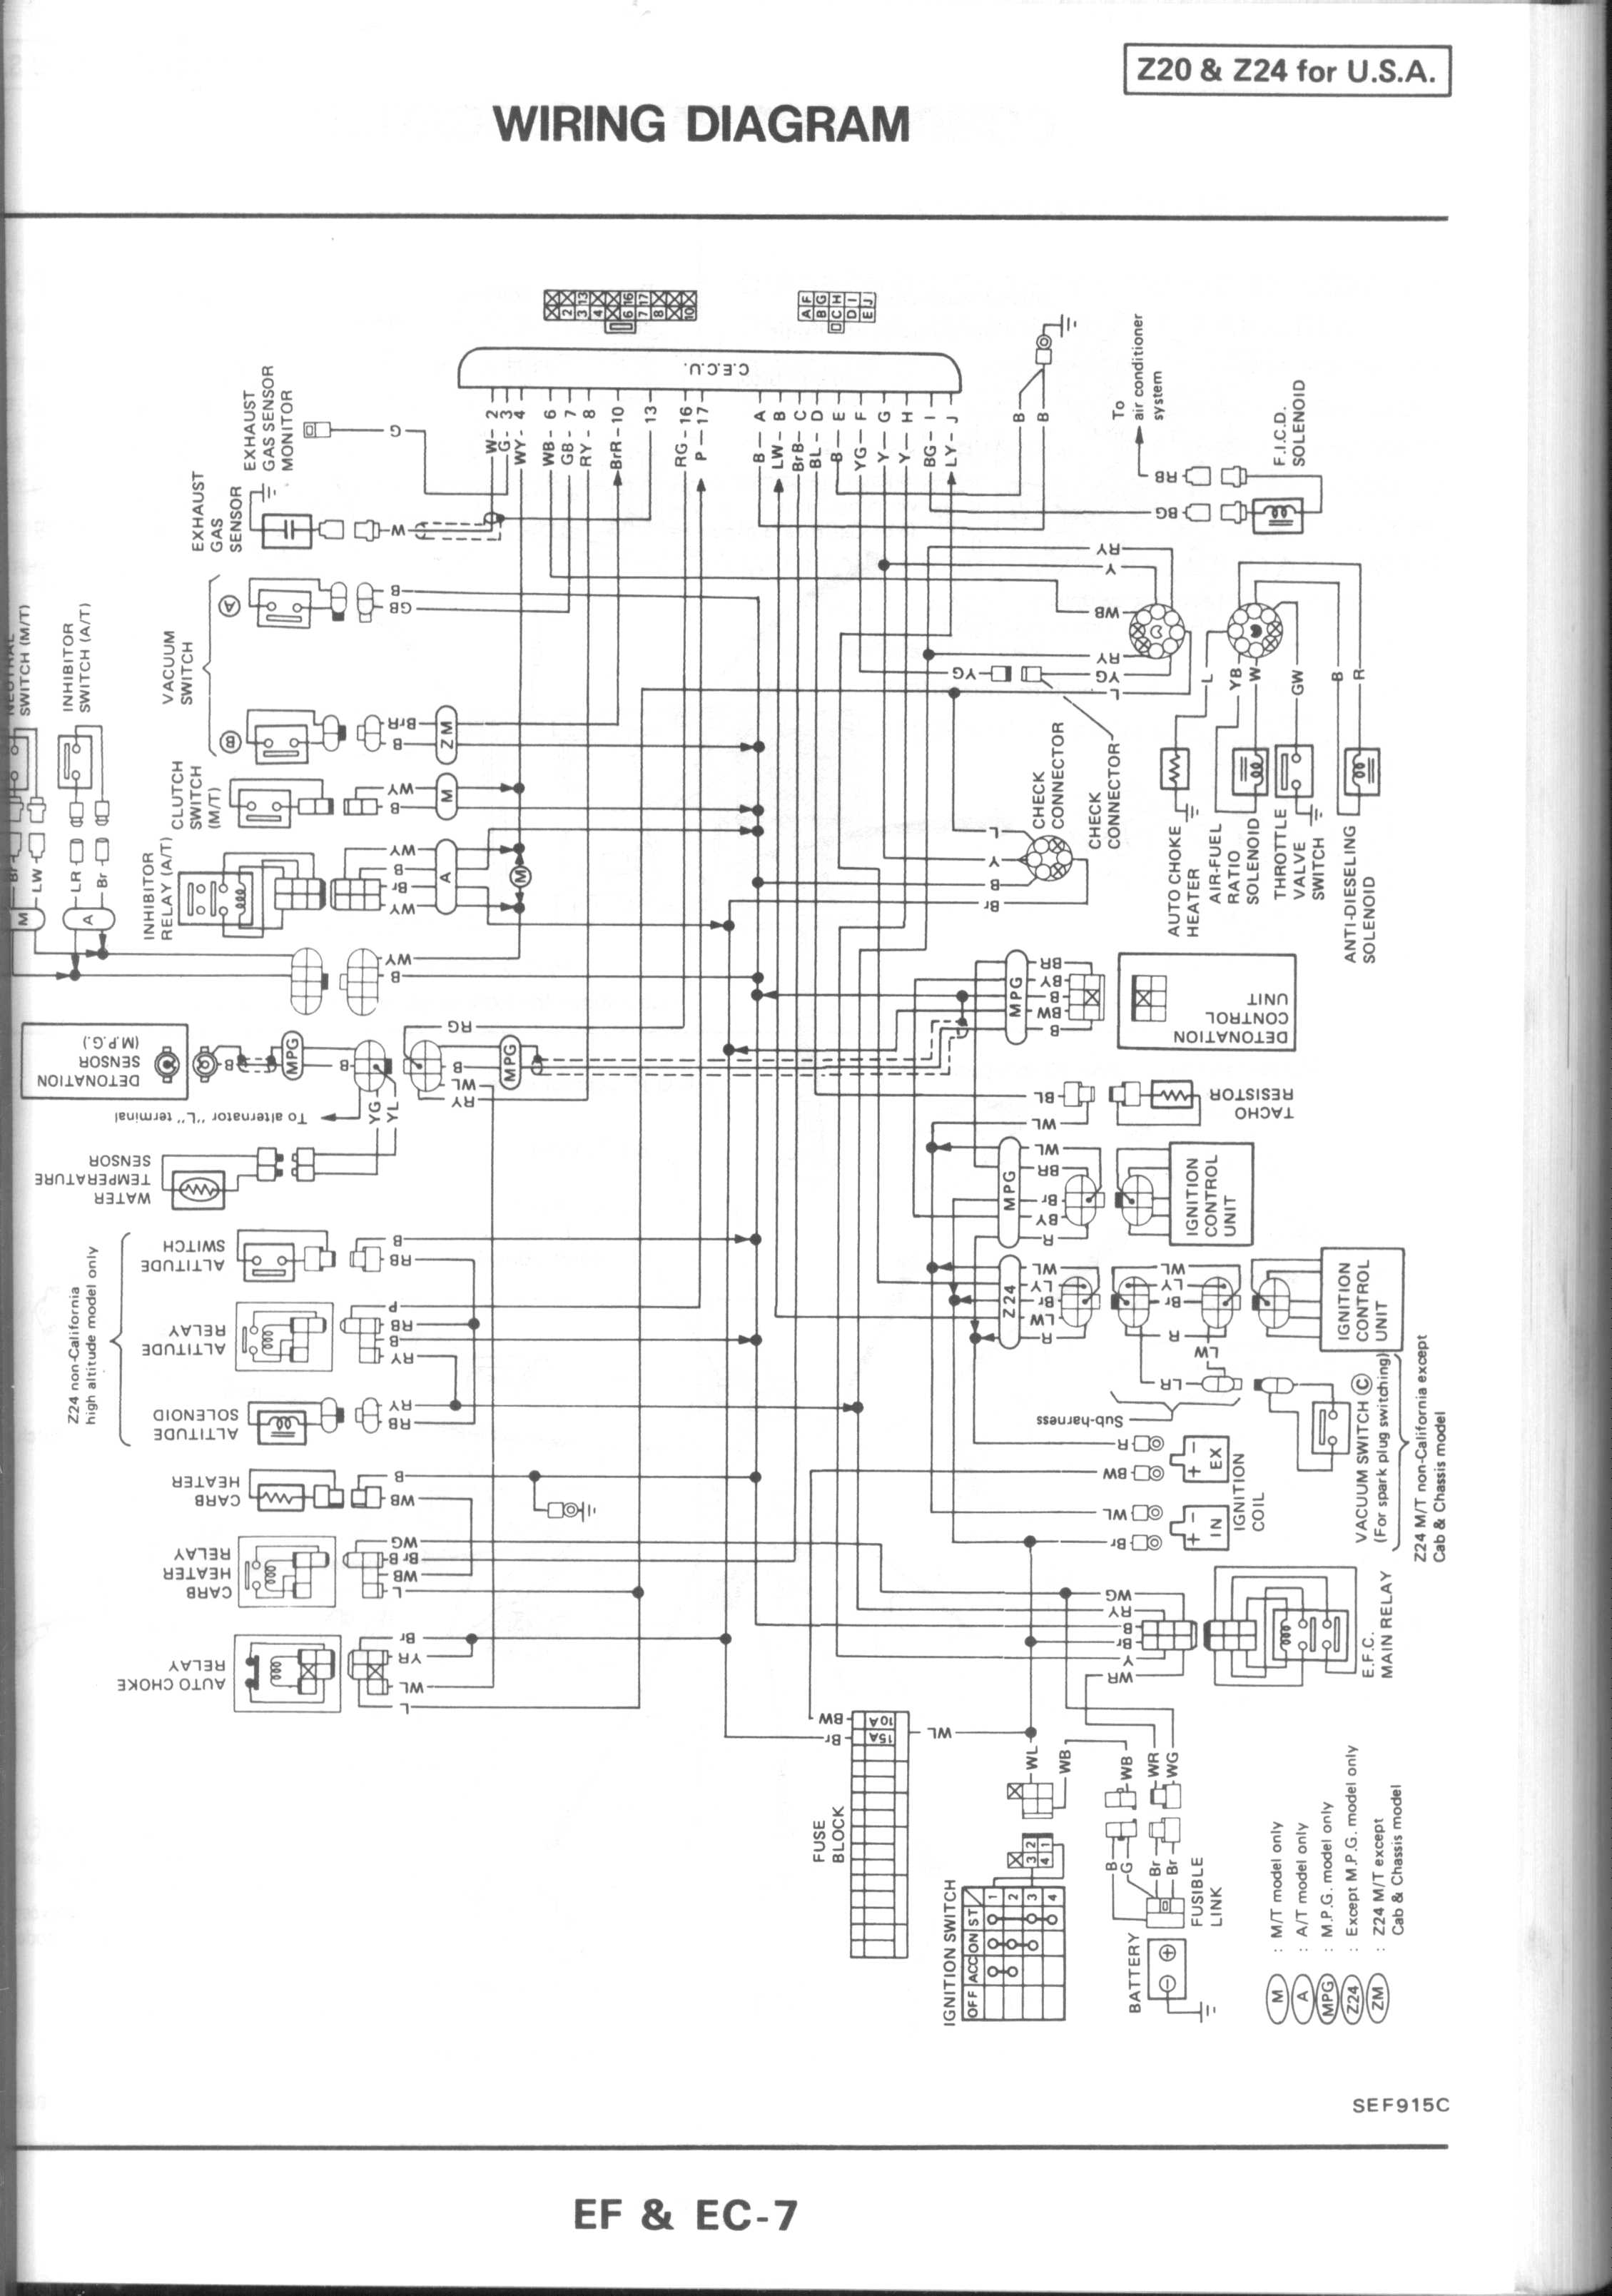 nissan wiring diagrams nissan d21 radio wiring diagram wiring diagrams and schematics nissan d21 wiring diagram diagrams and schematics